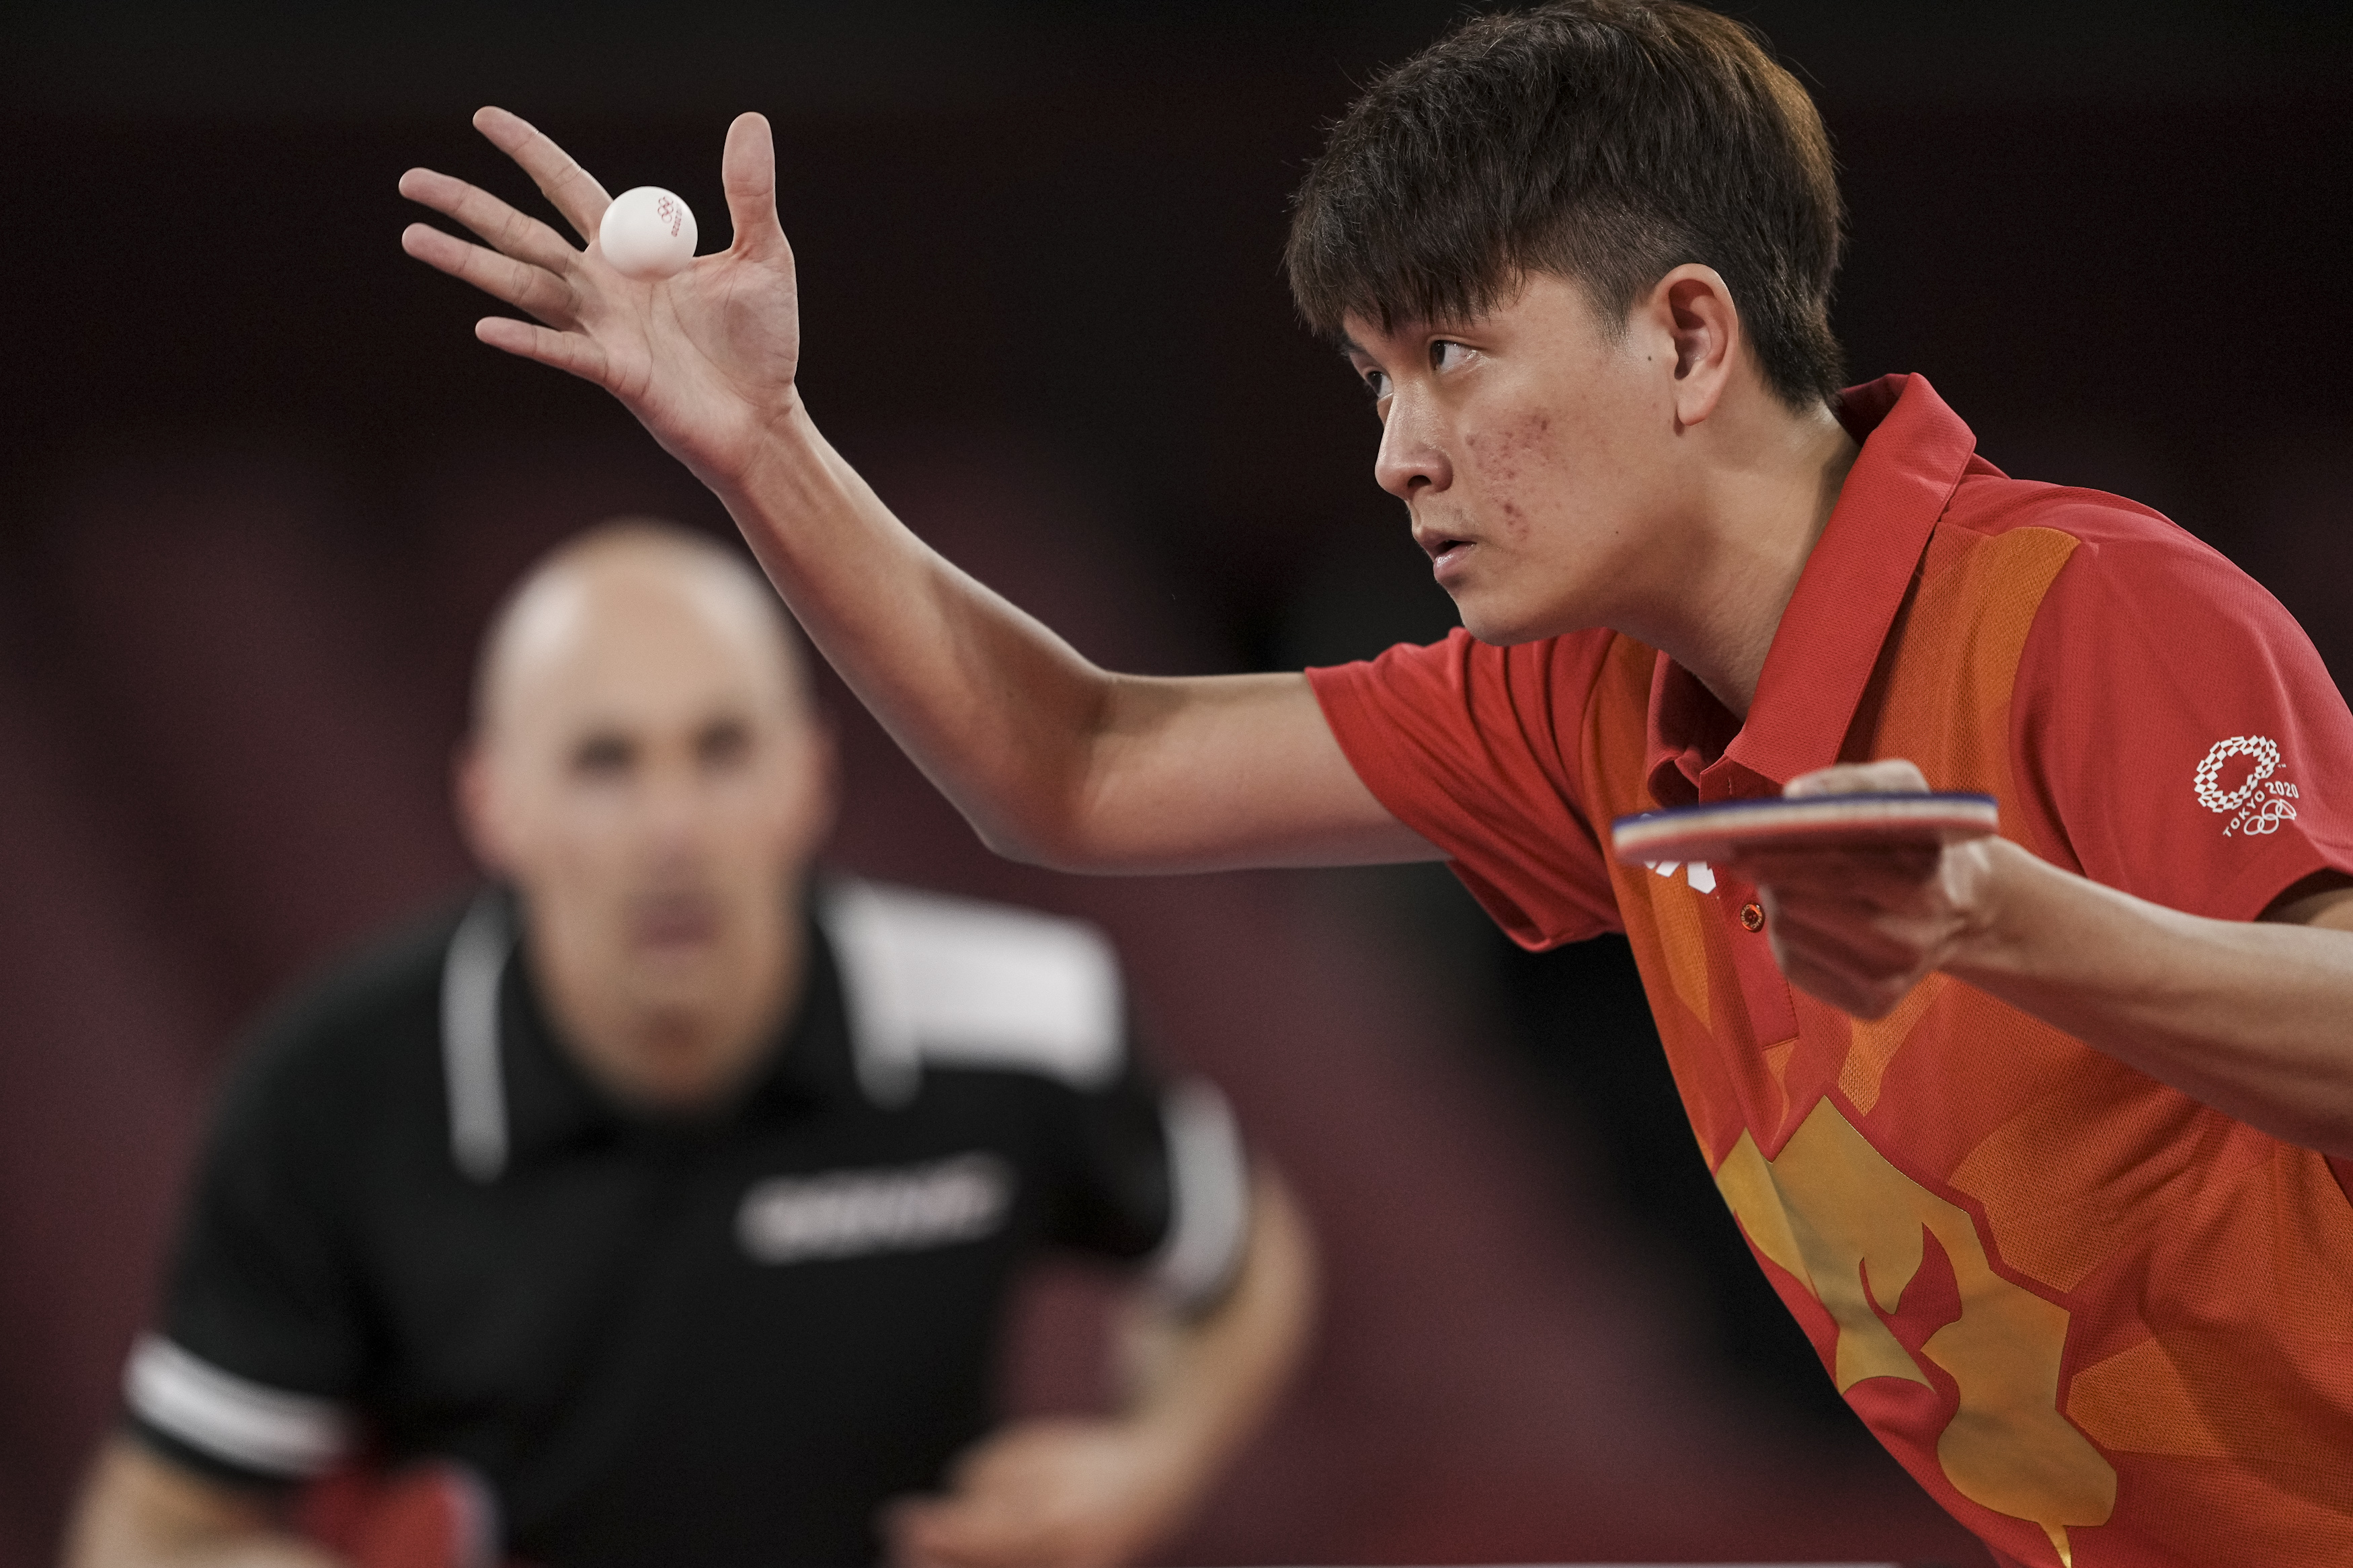 Tokyo 2020: TeamSG Paddler Clarence Chew puts up impressive display, before making 2nd Round exit